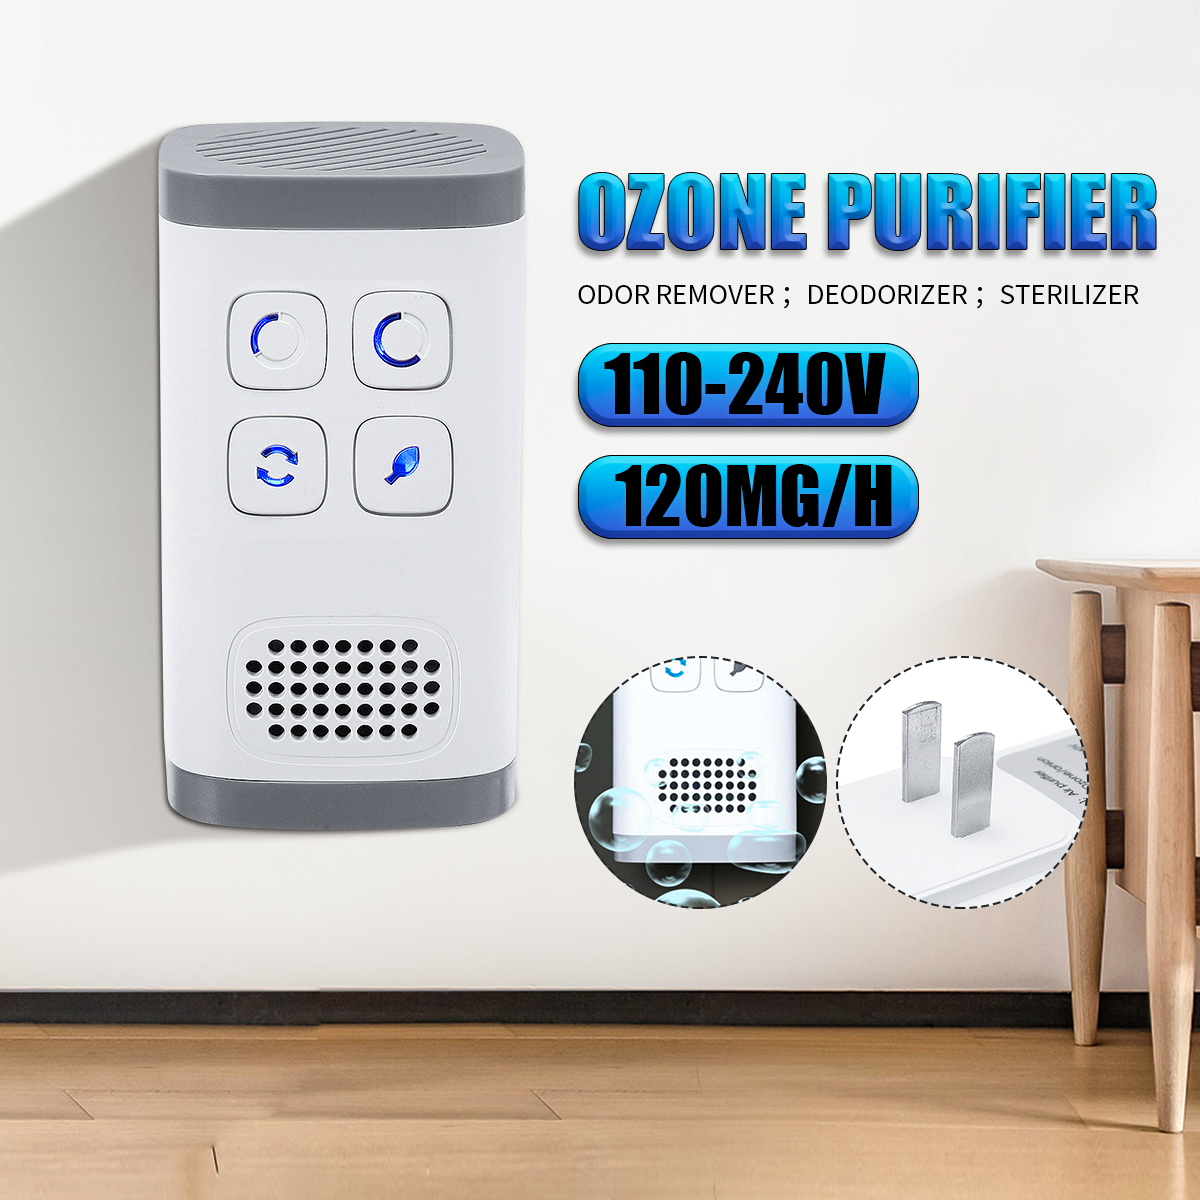 Air-Purifier Ionizer Generator Ozone Generator FILTER Purification  Home Toilet Deodorizer Pet Deodorizer Air Ionizer AC110-240v